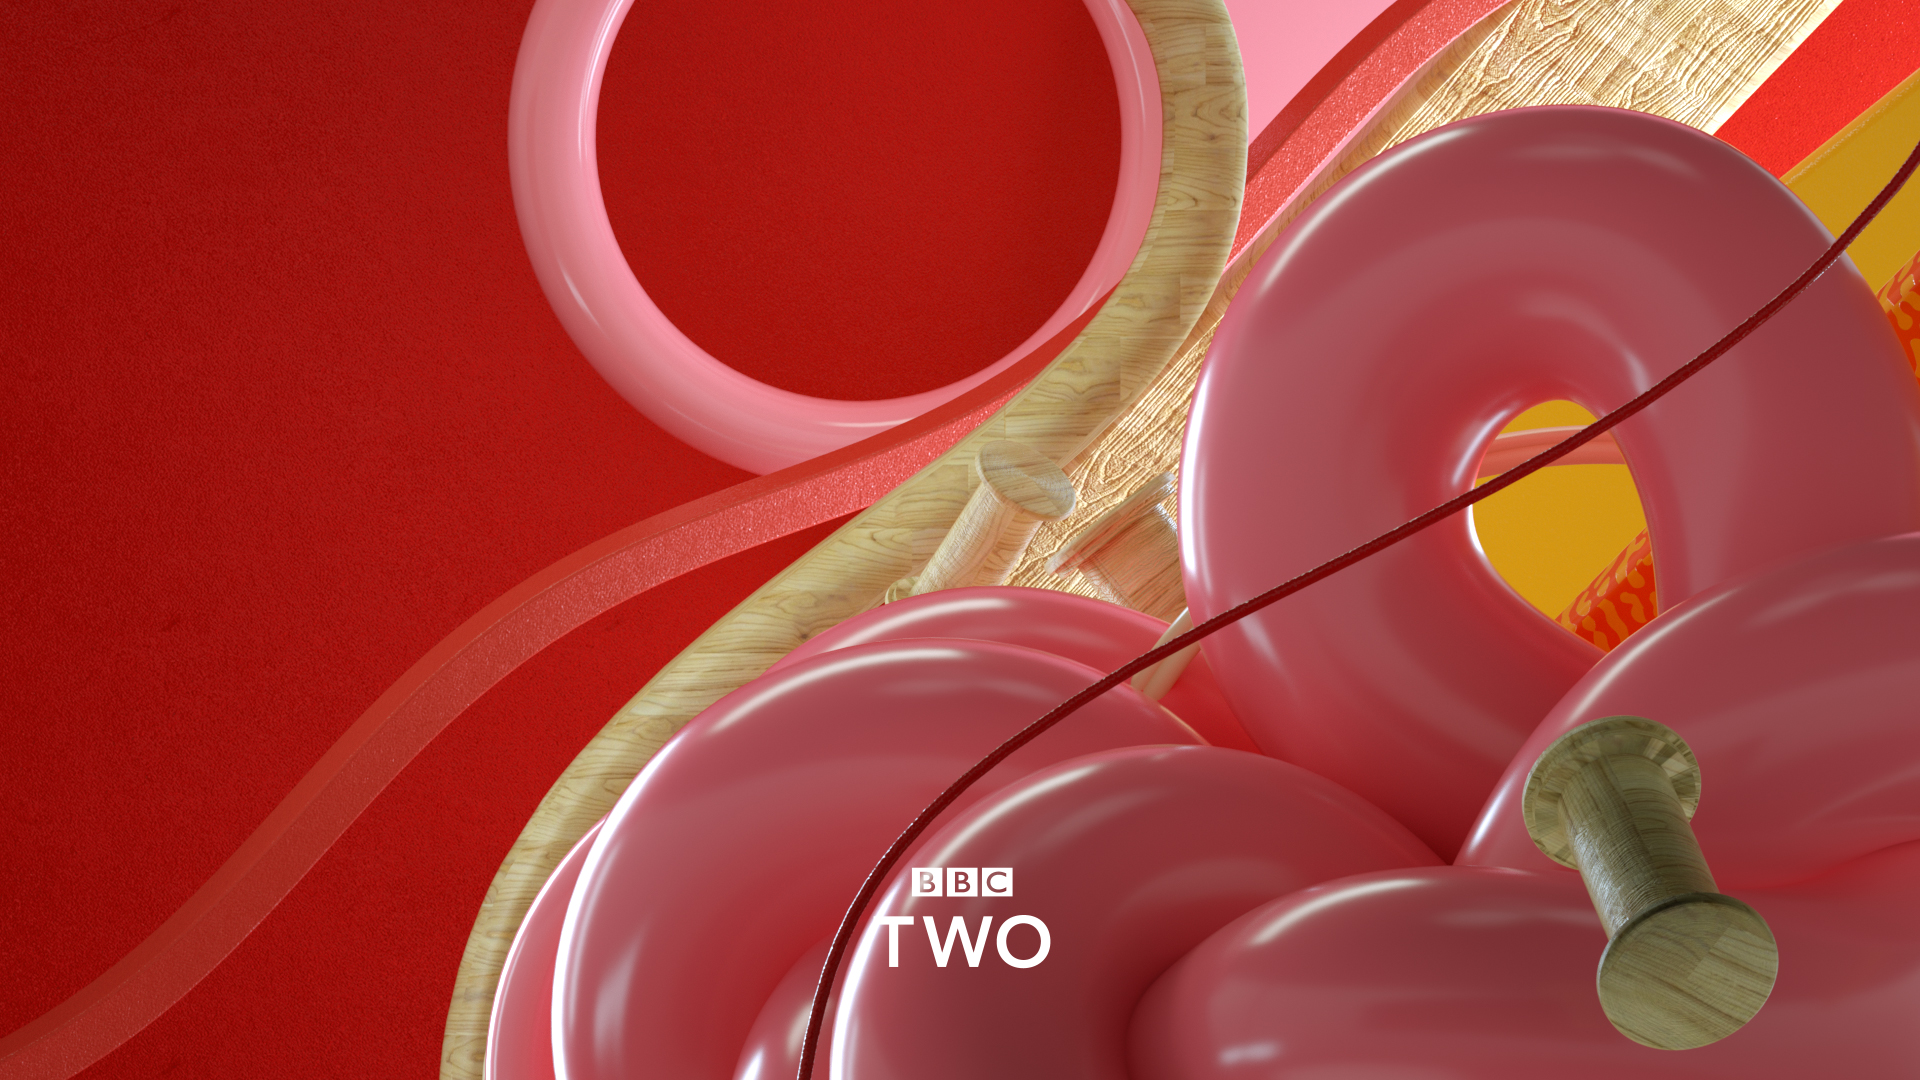 BBC_two_08